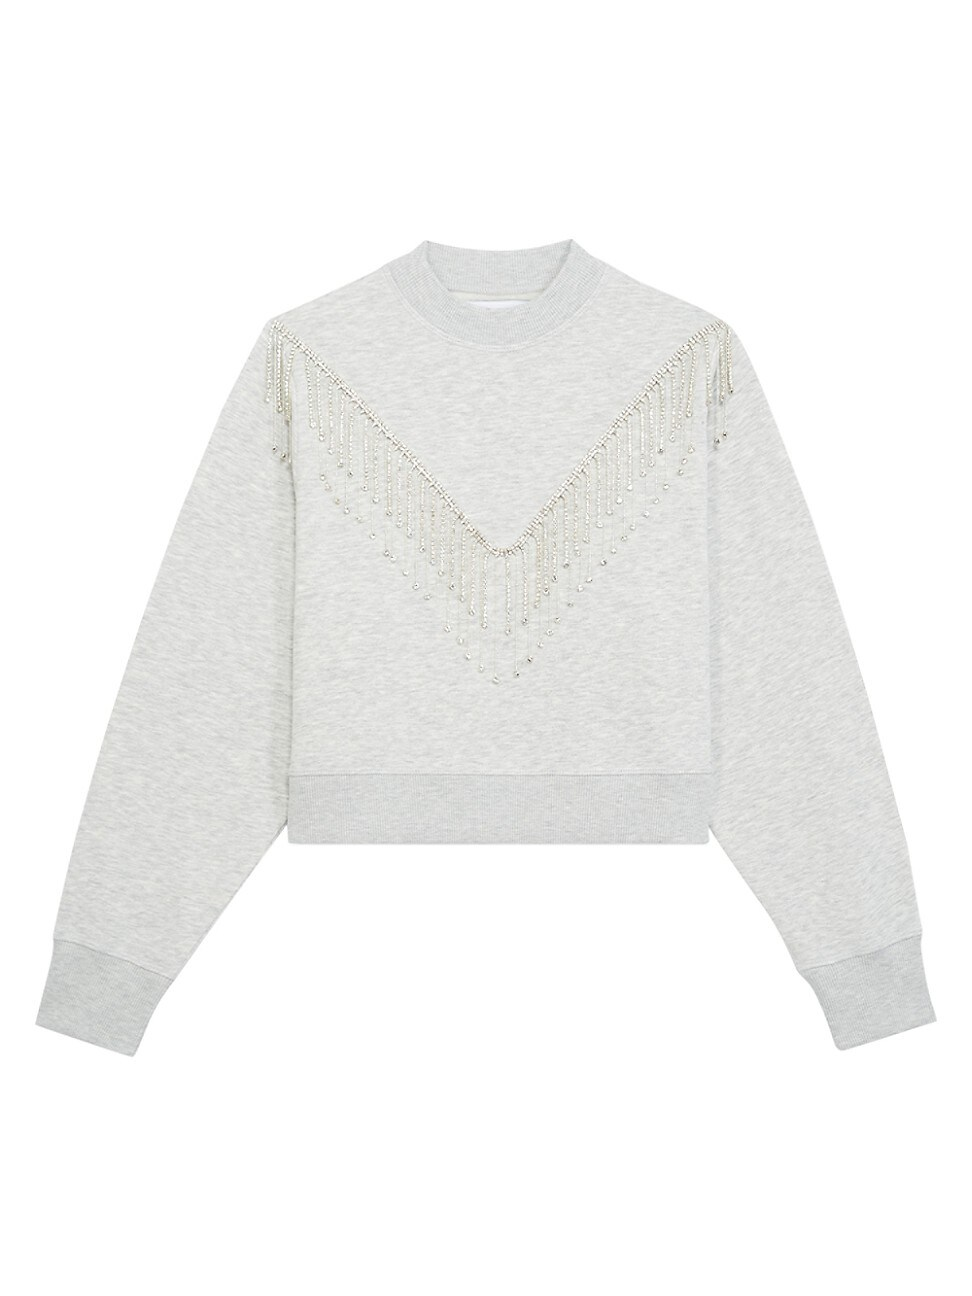 The Kooples WOMEN'S RHINESTONE TRIM SWEATSHIRT